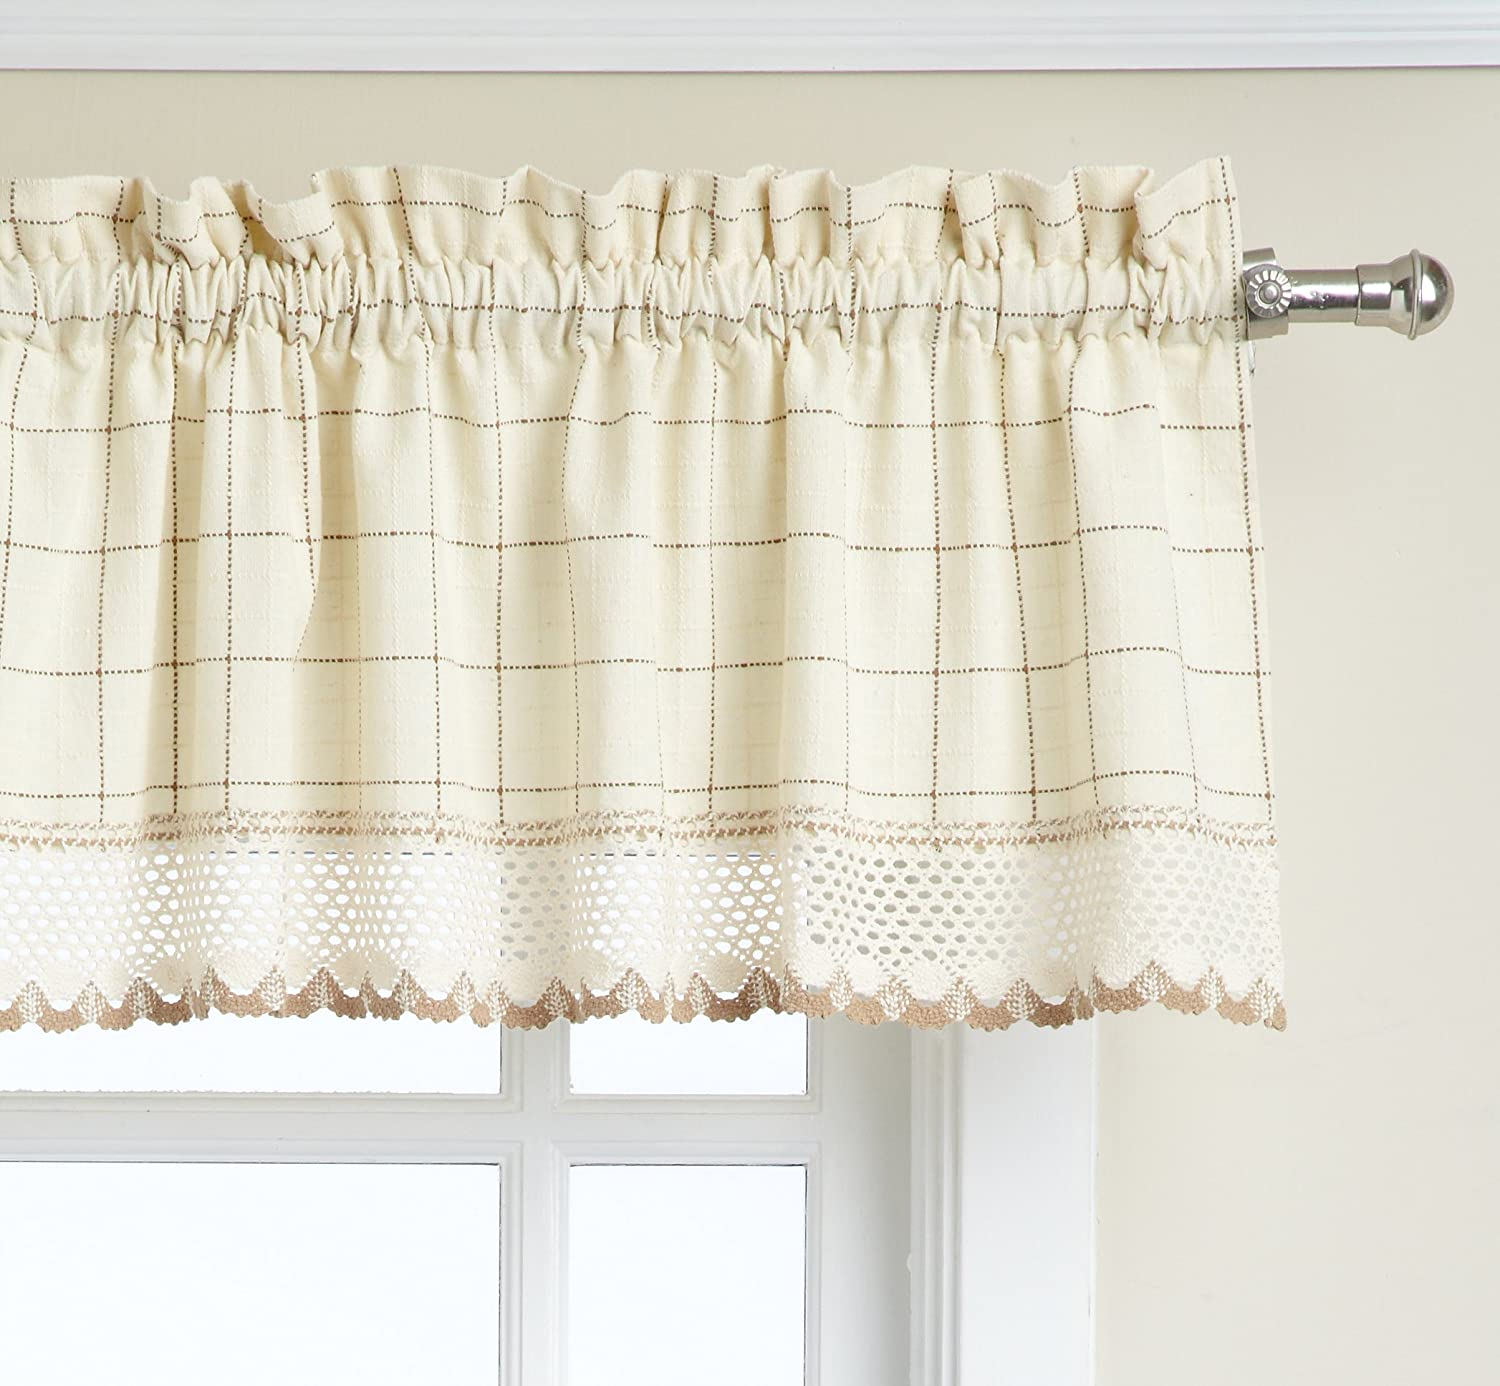 Lorraine Home Fashions Adirondack Valance, 60-Inch by 12-Inch, Toast 00177-V-00048